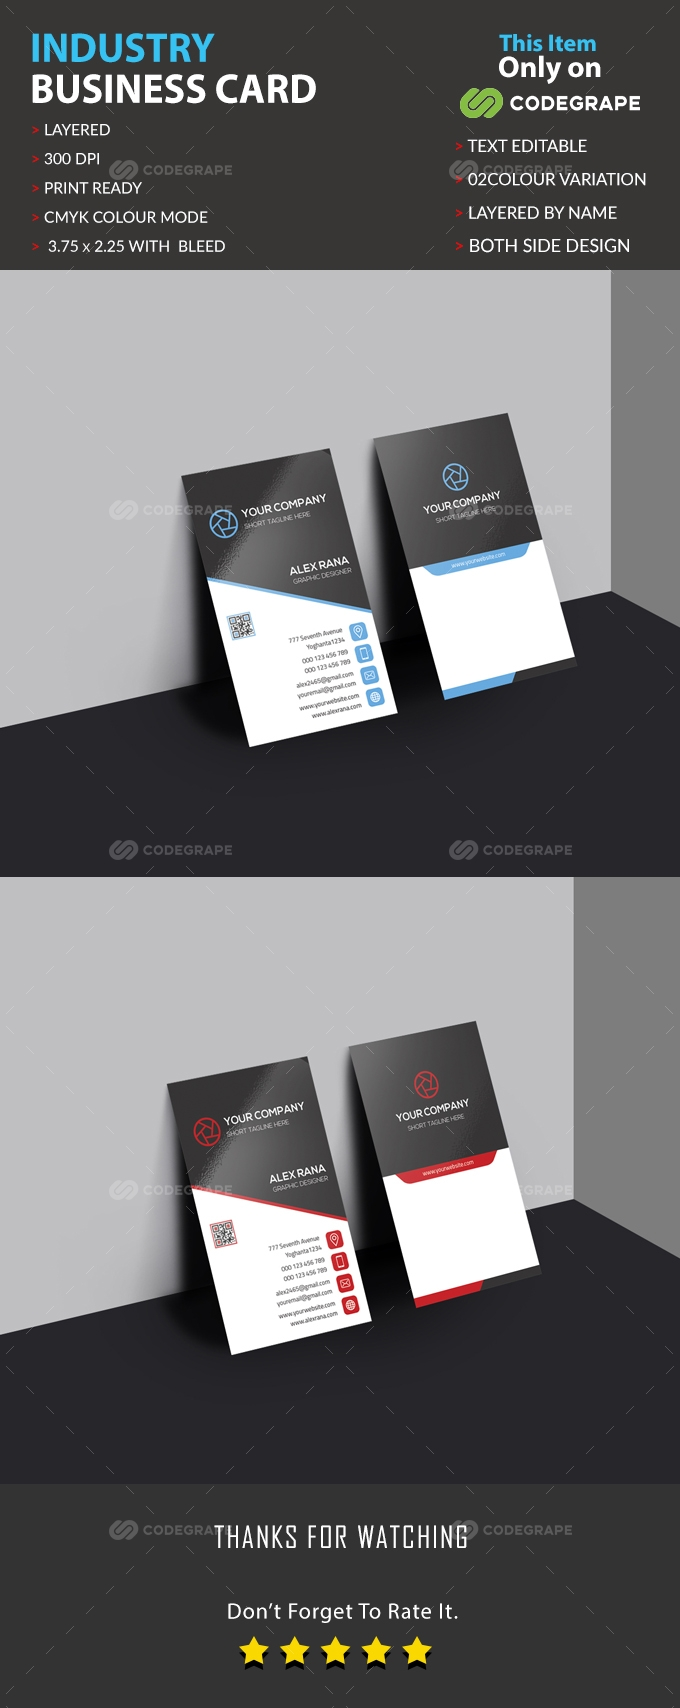 Industry Business Card